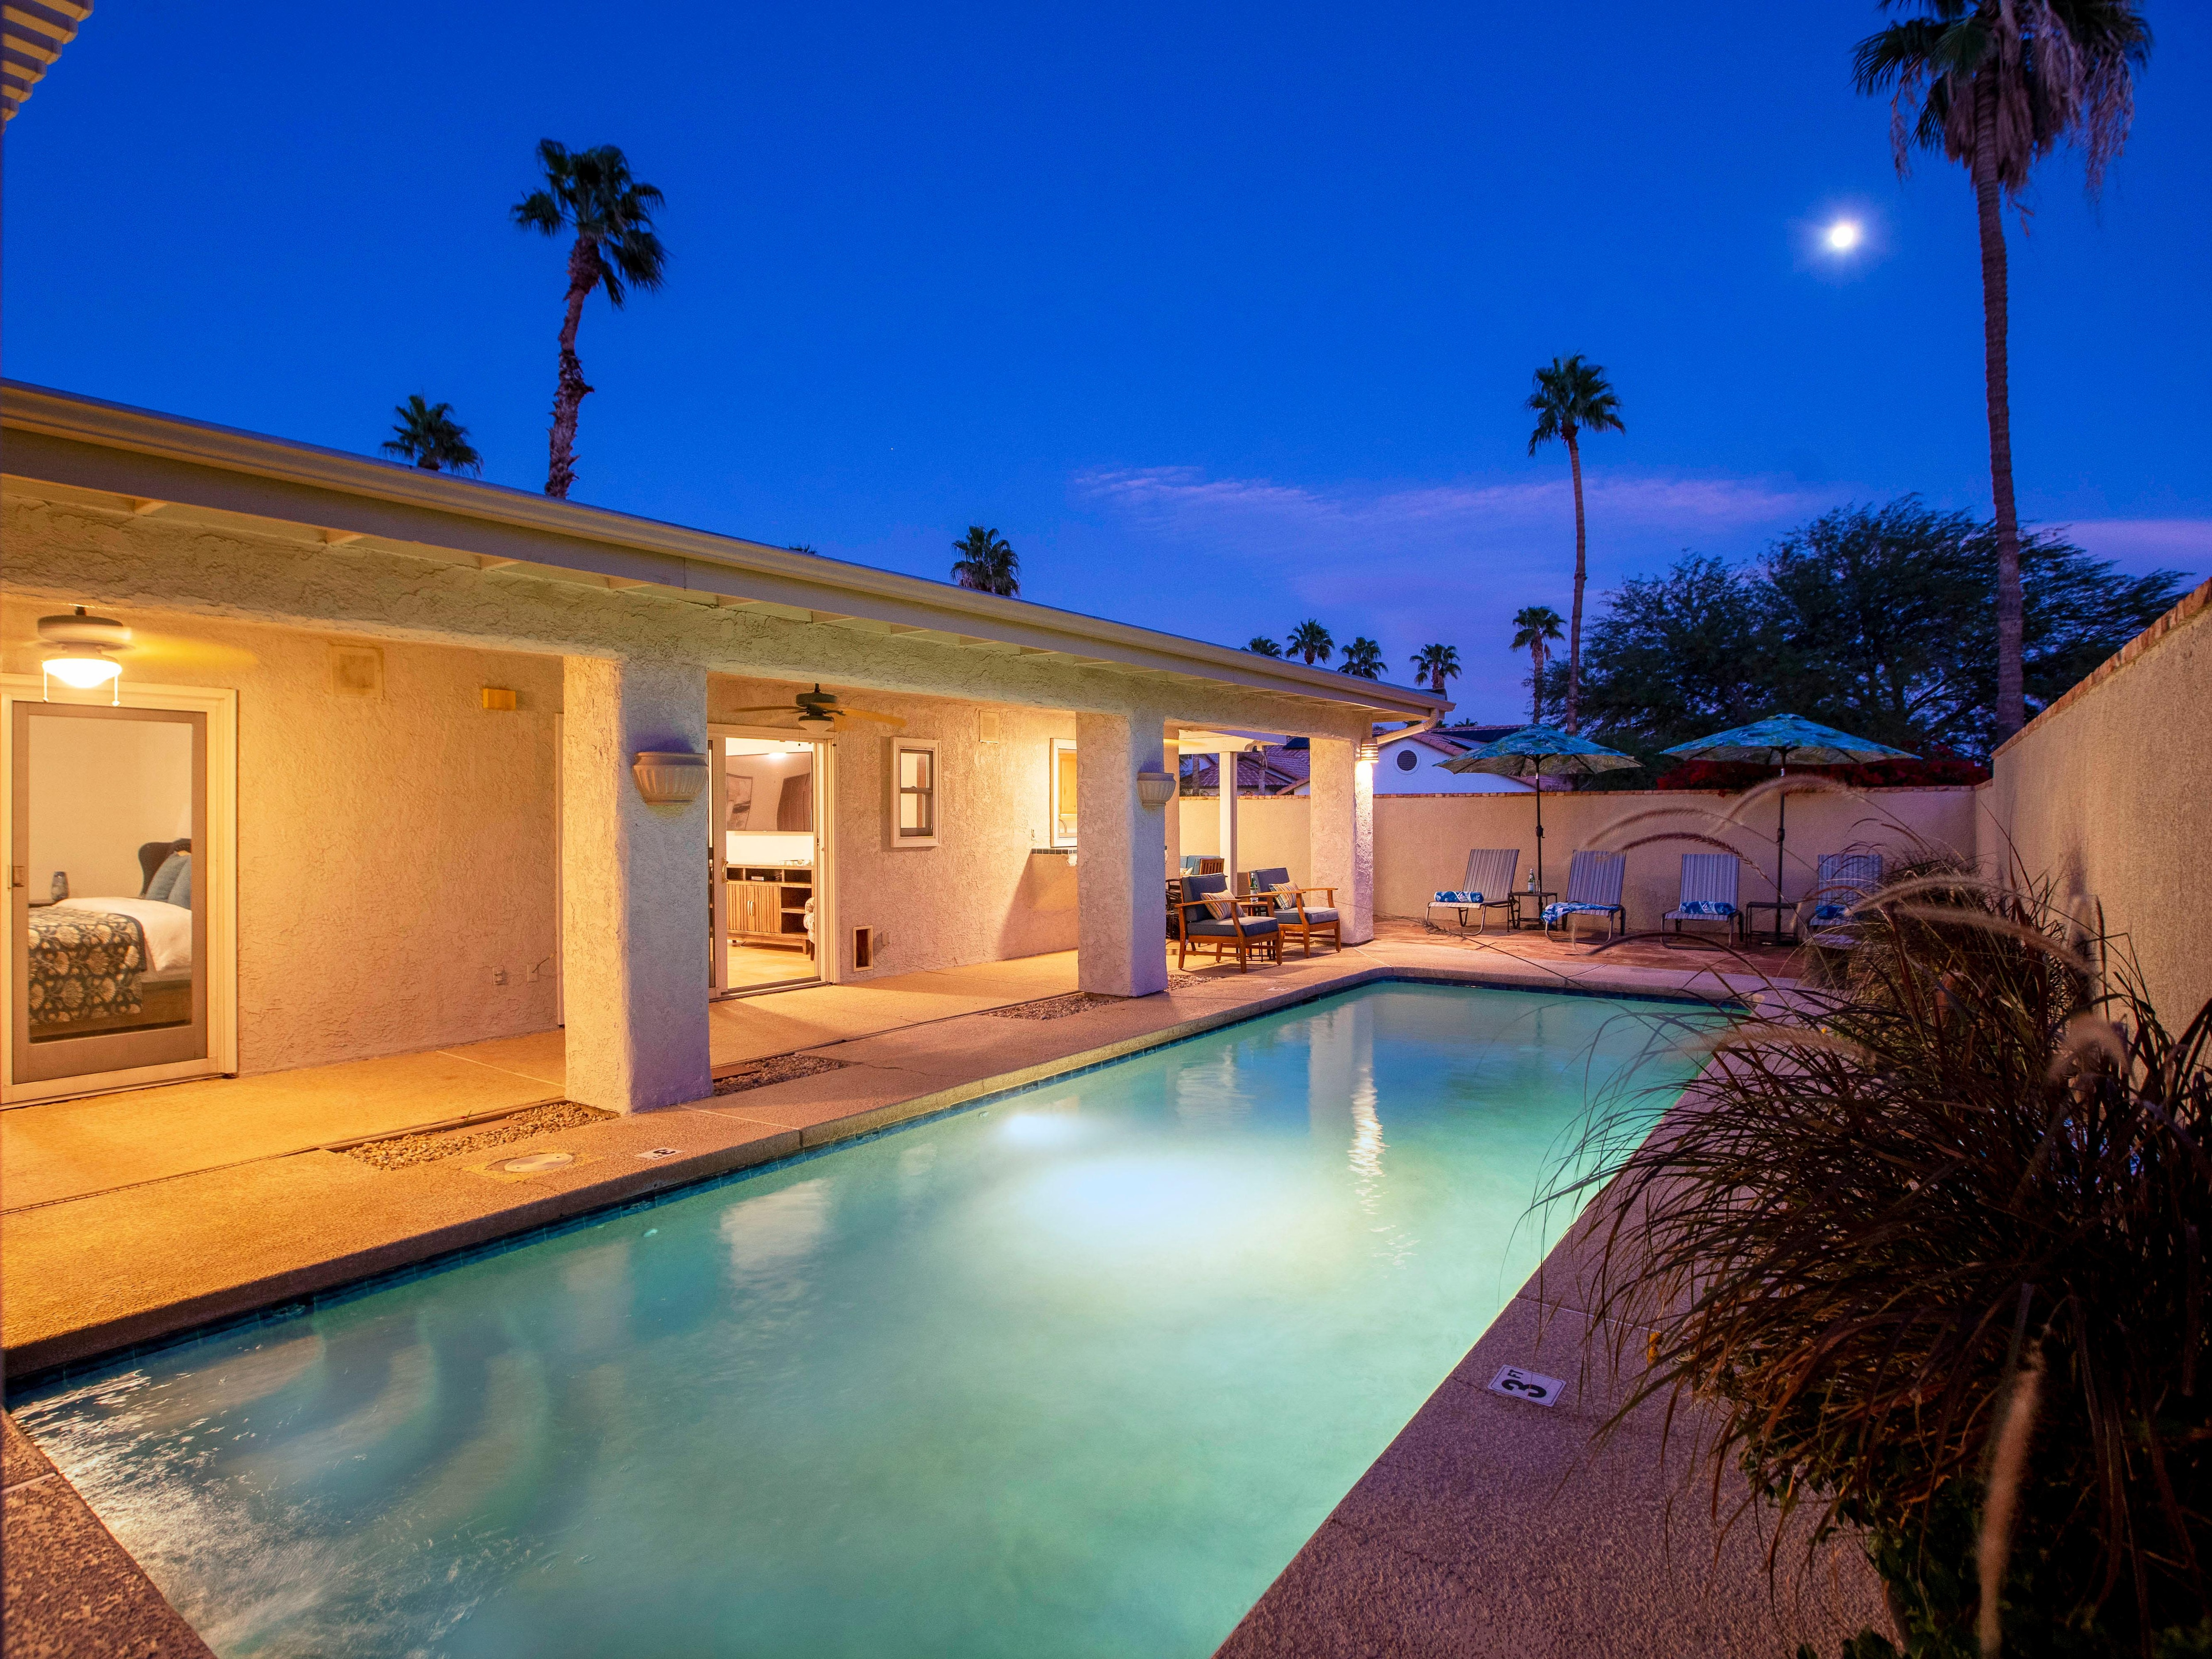 Value Priced Home Close to Amenities with Private Pool